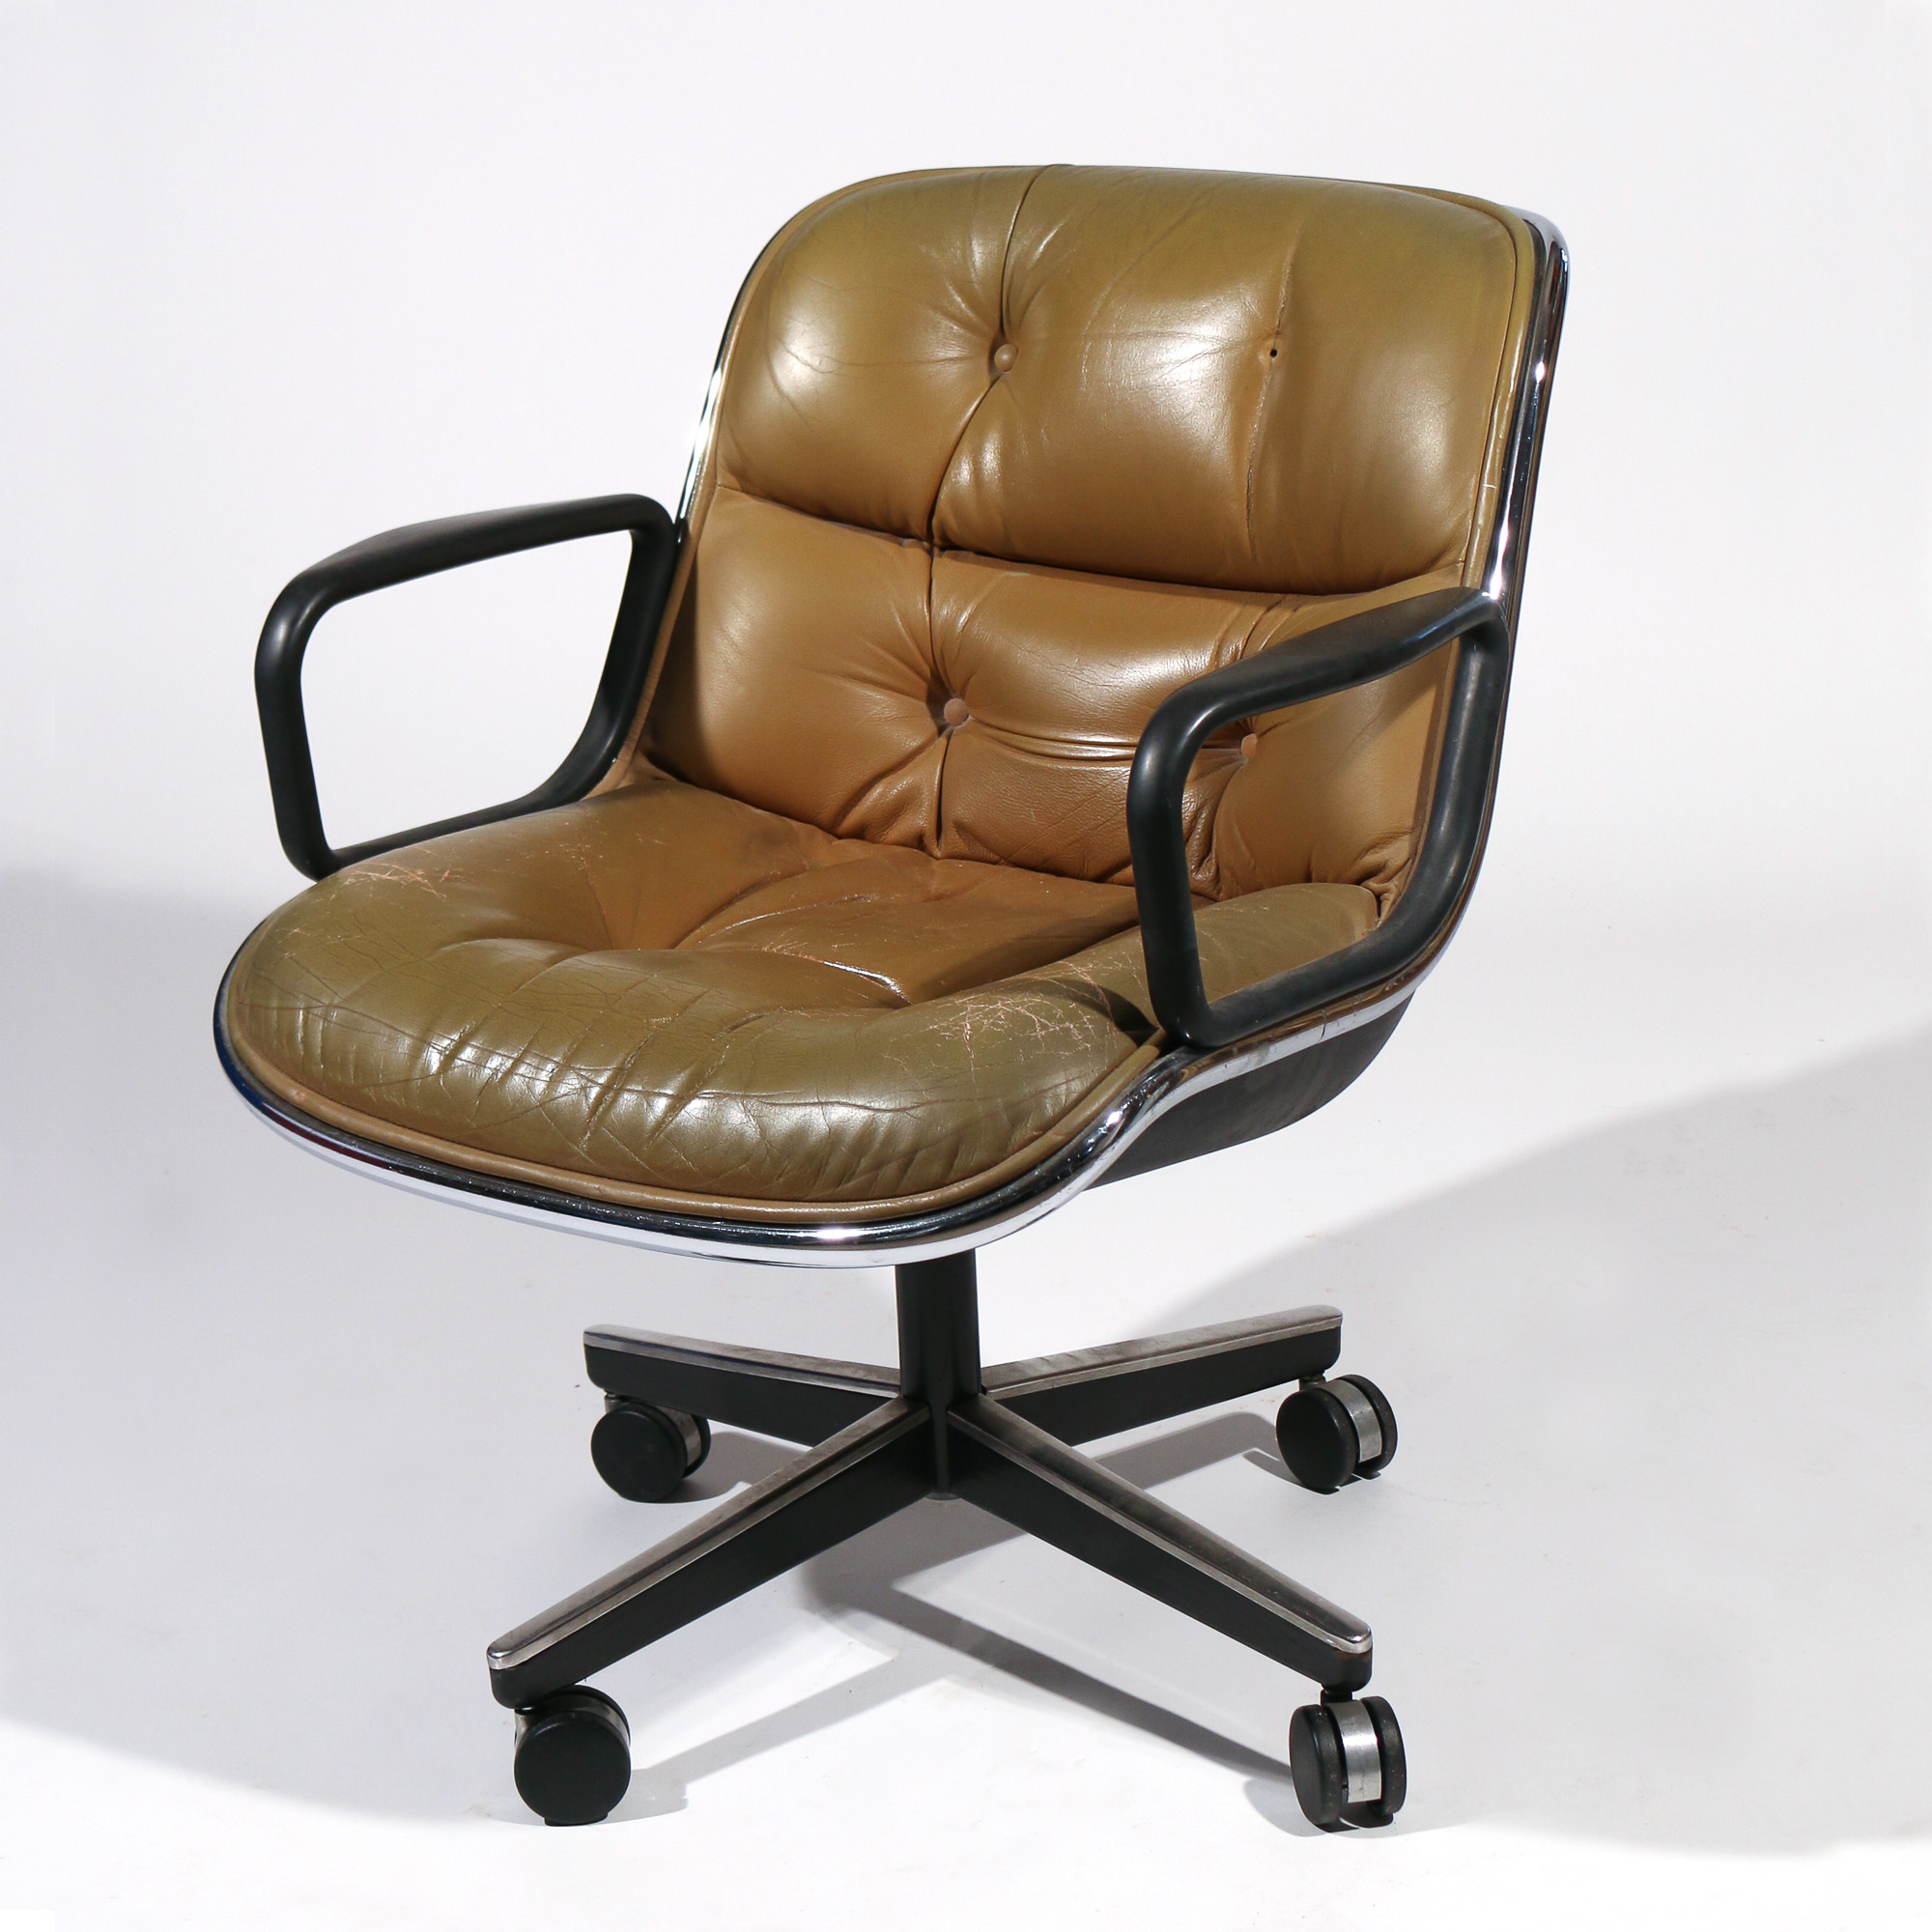 KNOLL LEATHER OFFICE CHAIR – Lofty Marketplace